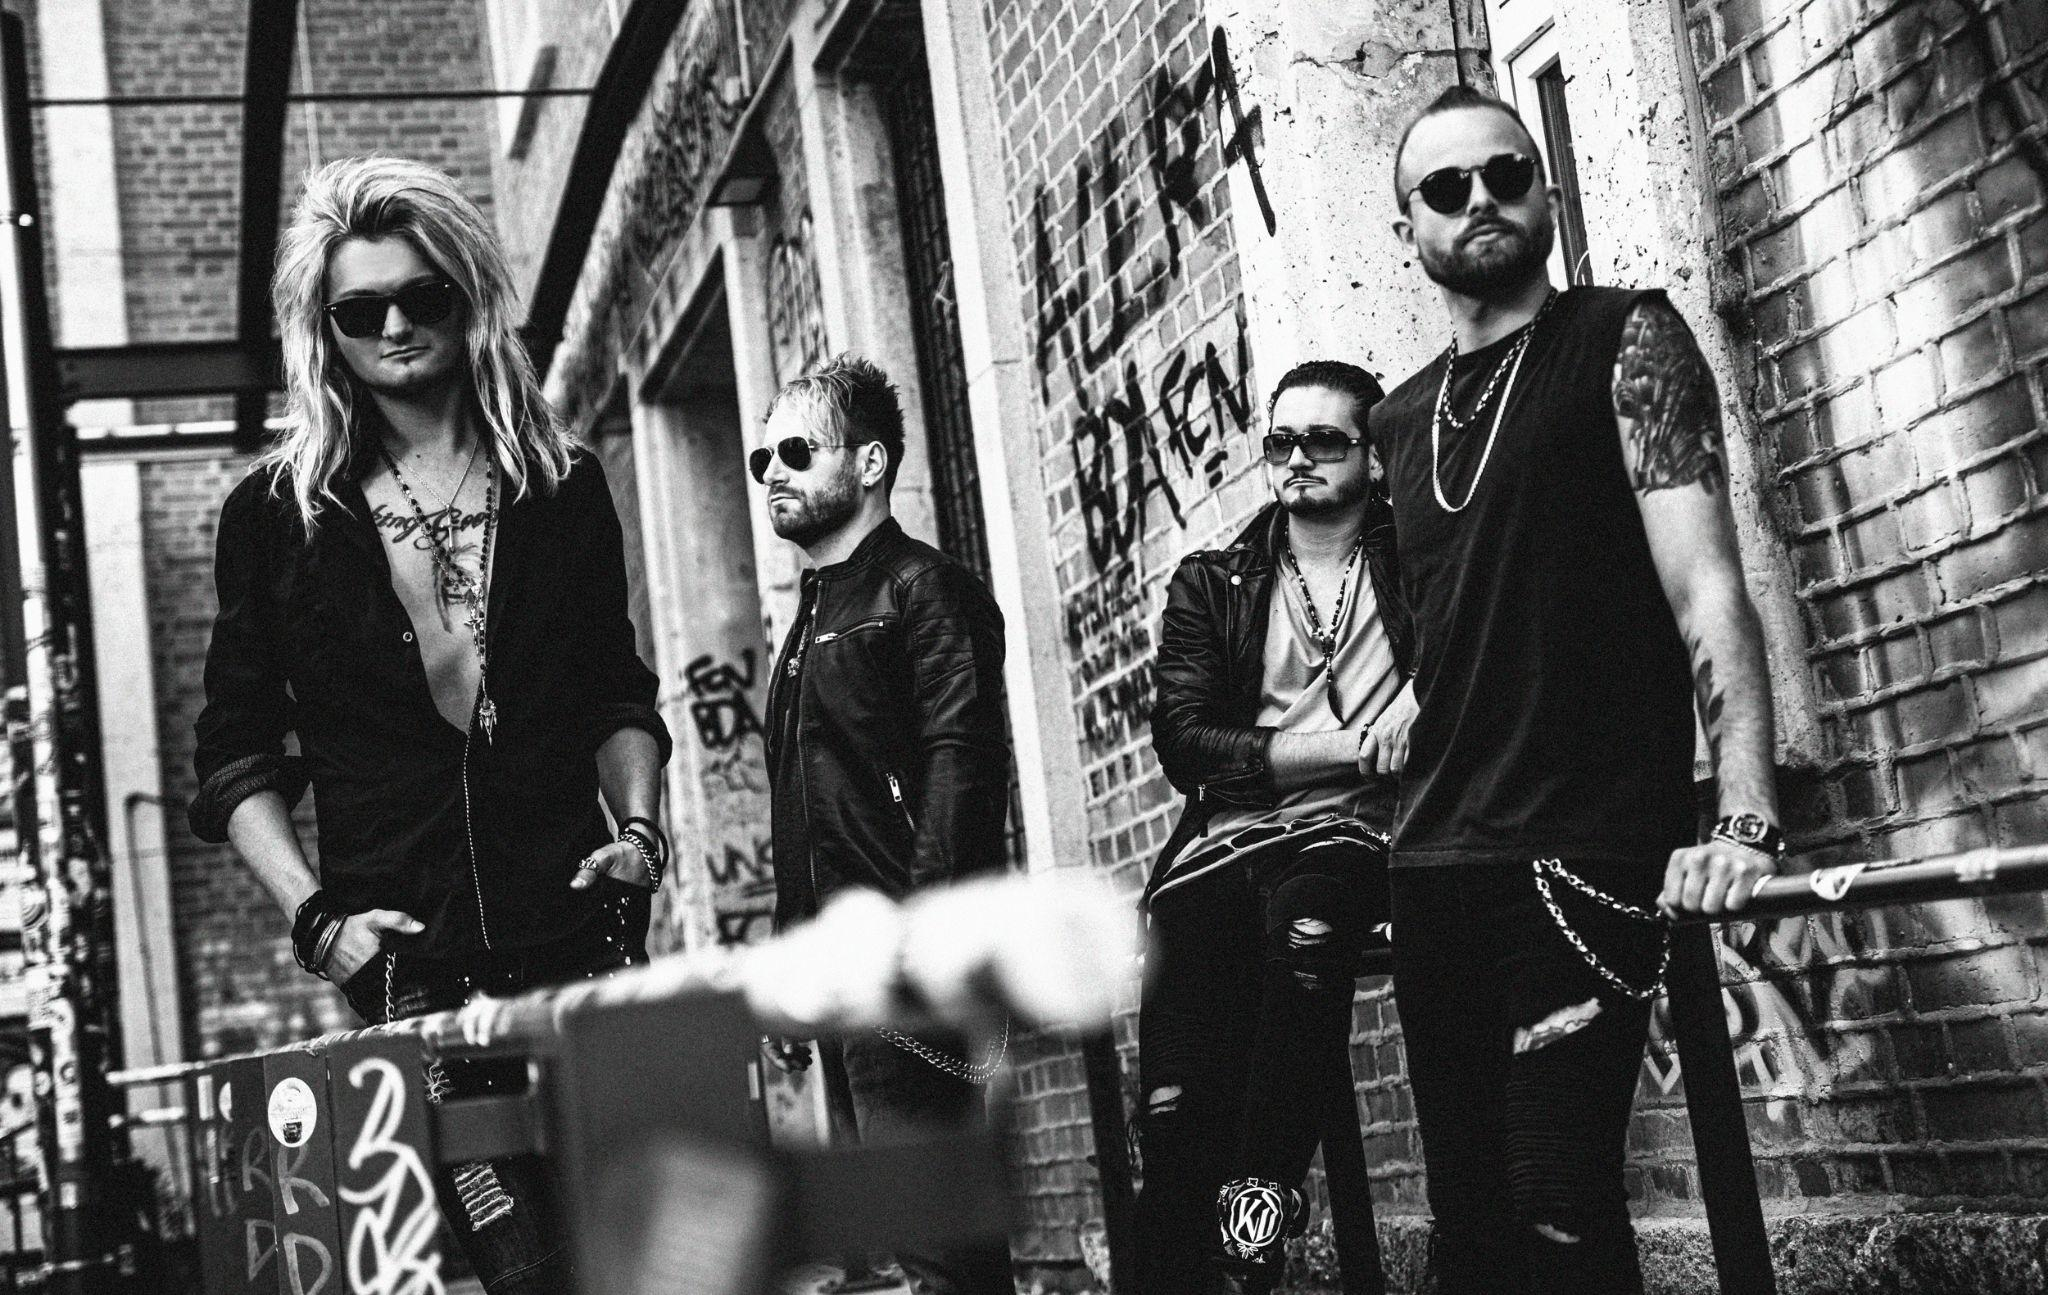 kissin-dynamite-kuendigen-neues-album-und-napalm-debuet-not-the-end-of-the-road-an